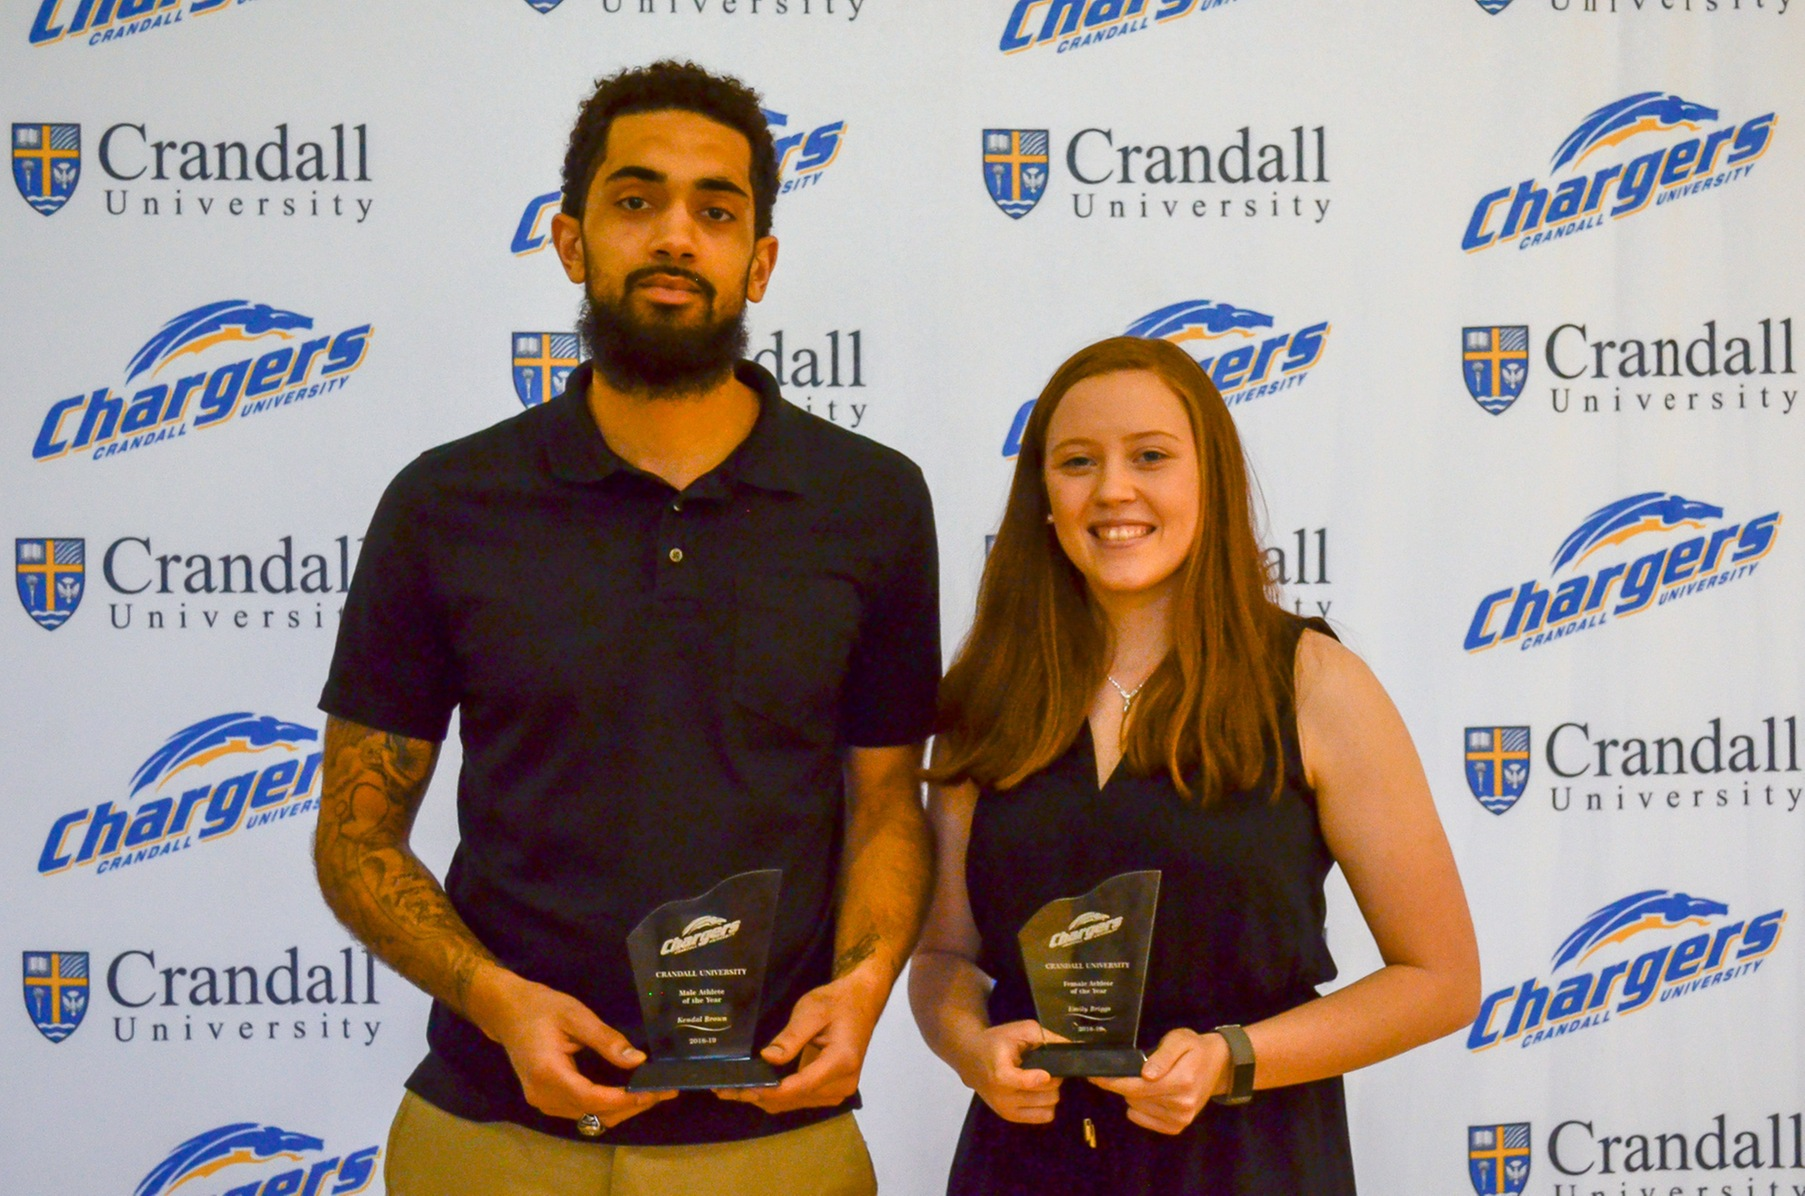 Chargers 2019 Athletes of the Year: Kendal Brown (left) and Emily Briggs (right)